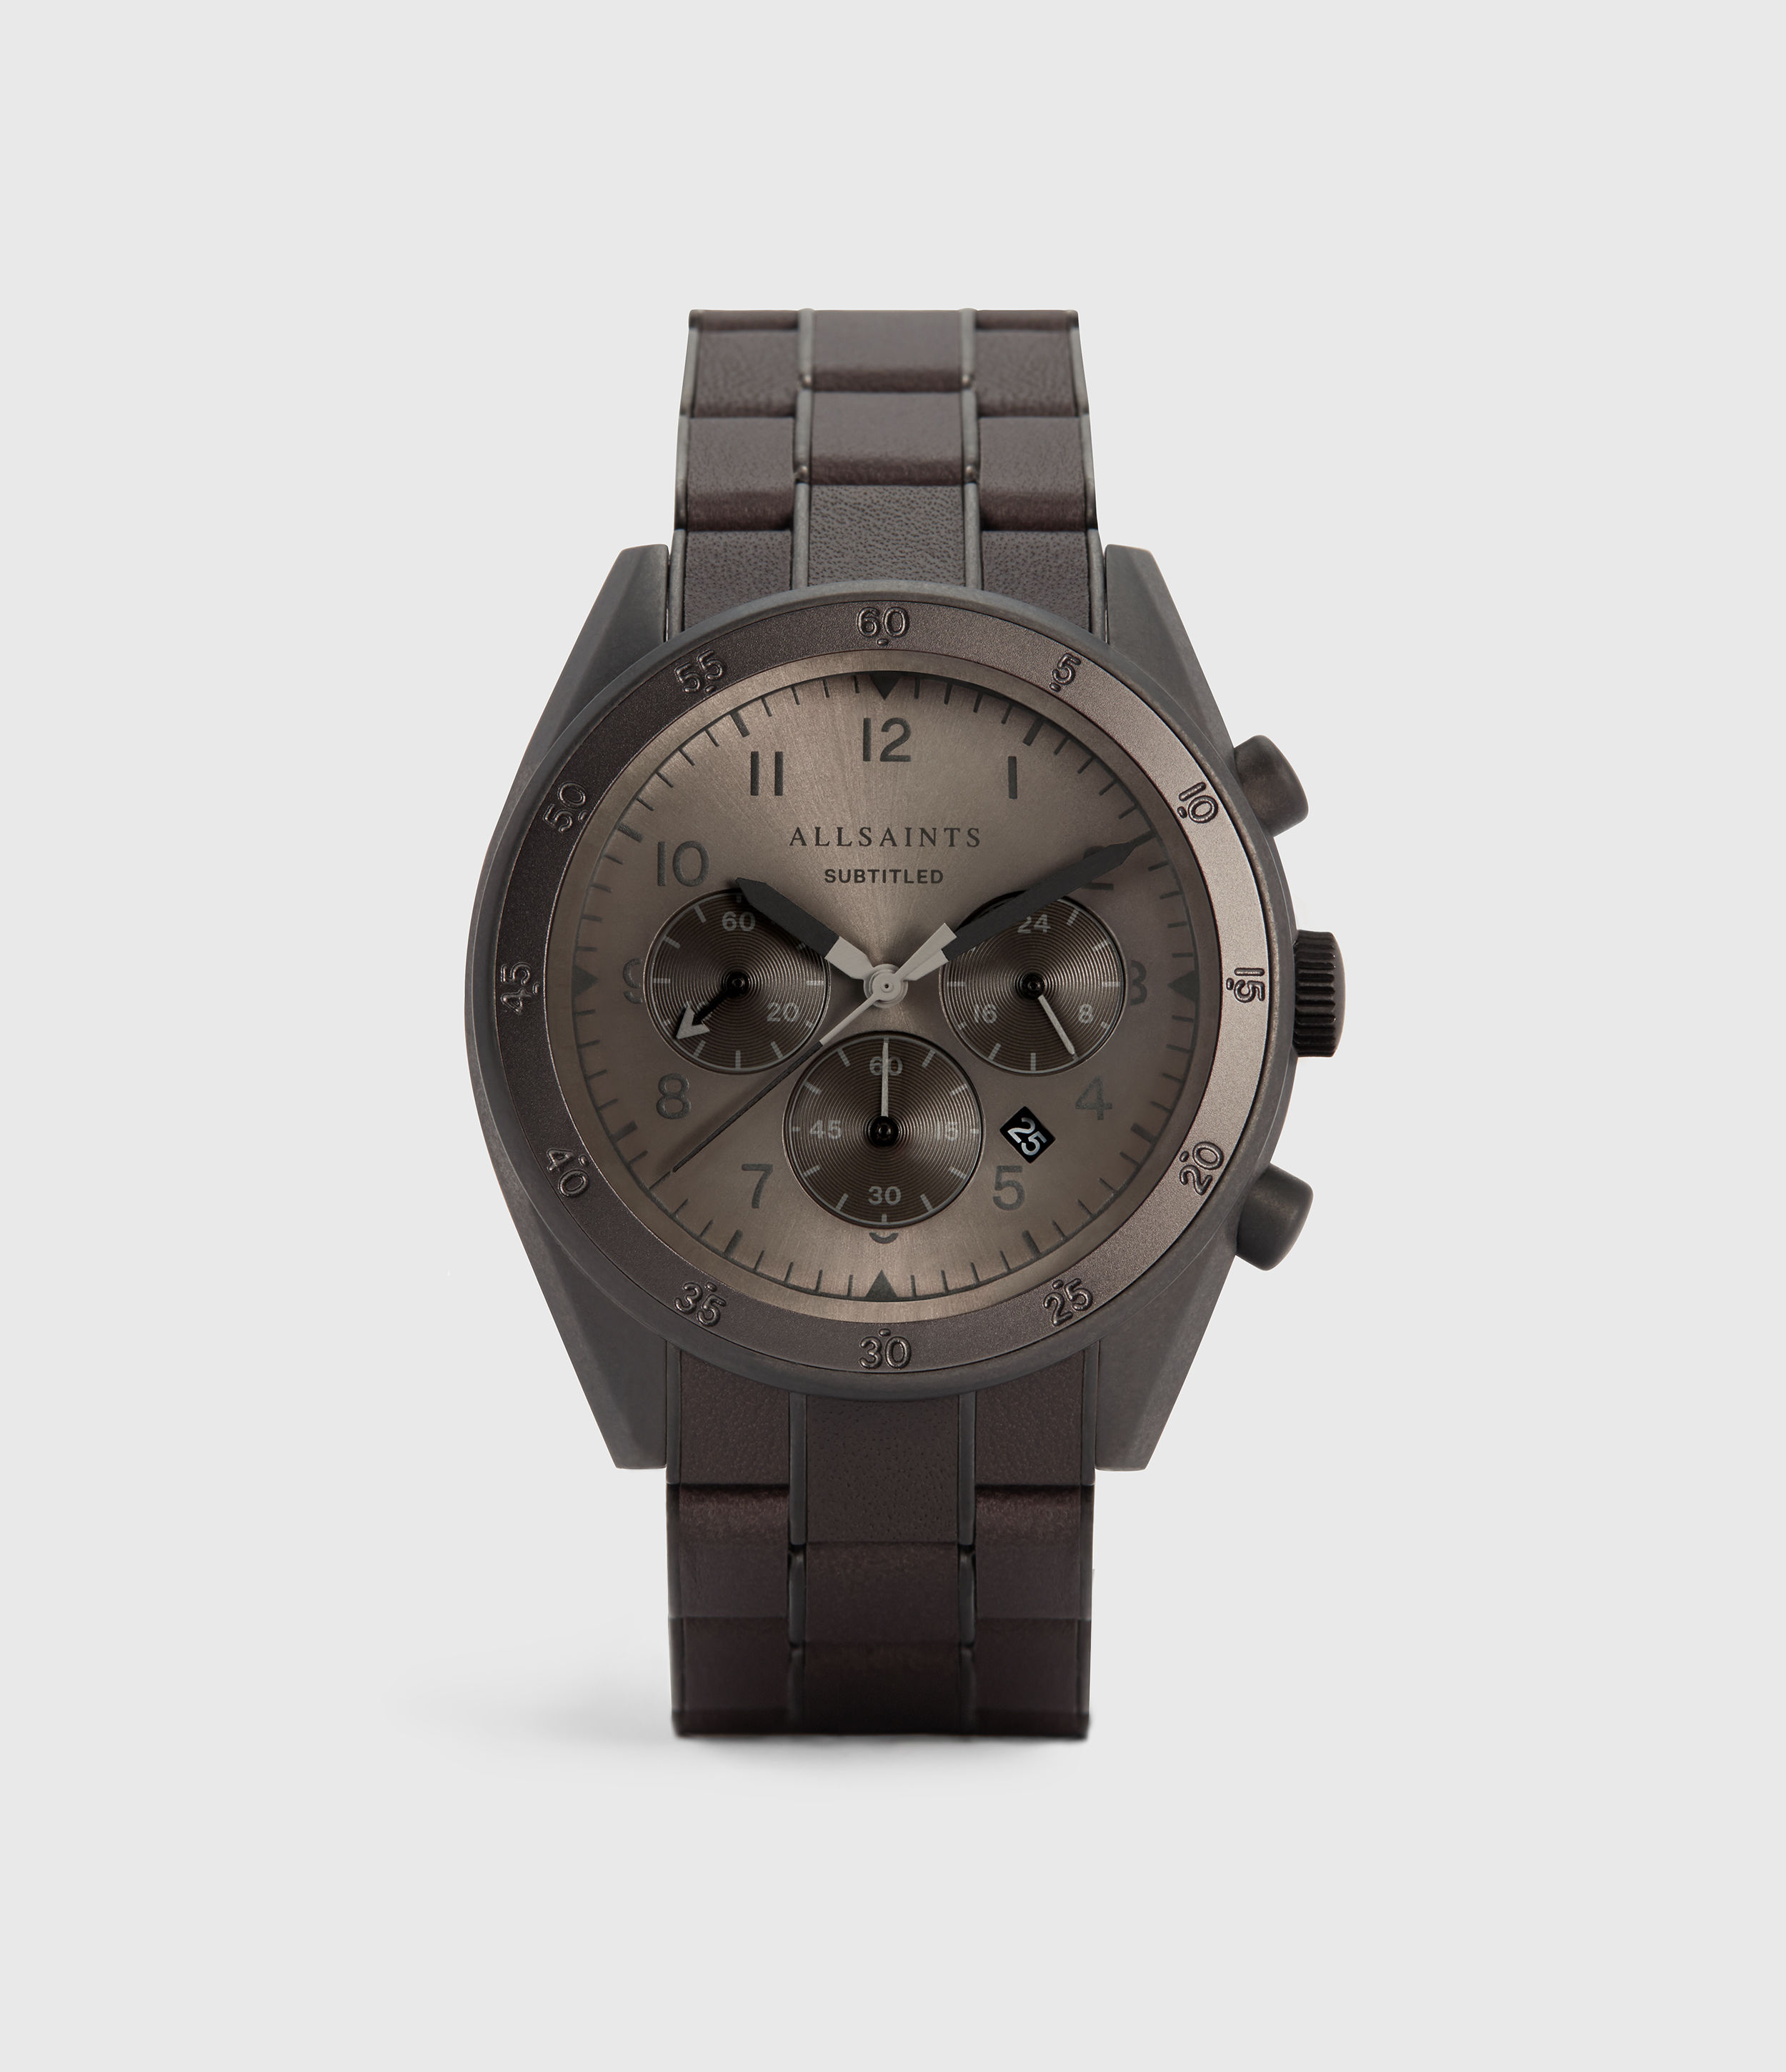 AllSaints Men's Subtitled VIII Stainless Steel Leather Wrapped Watch